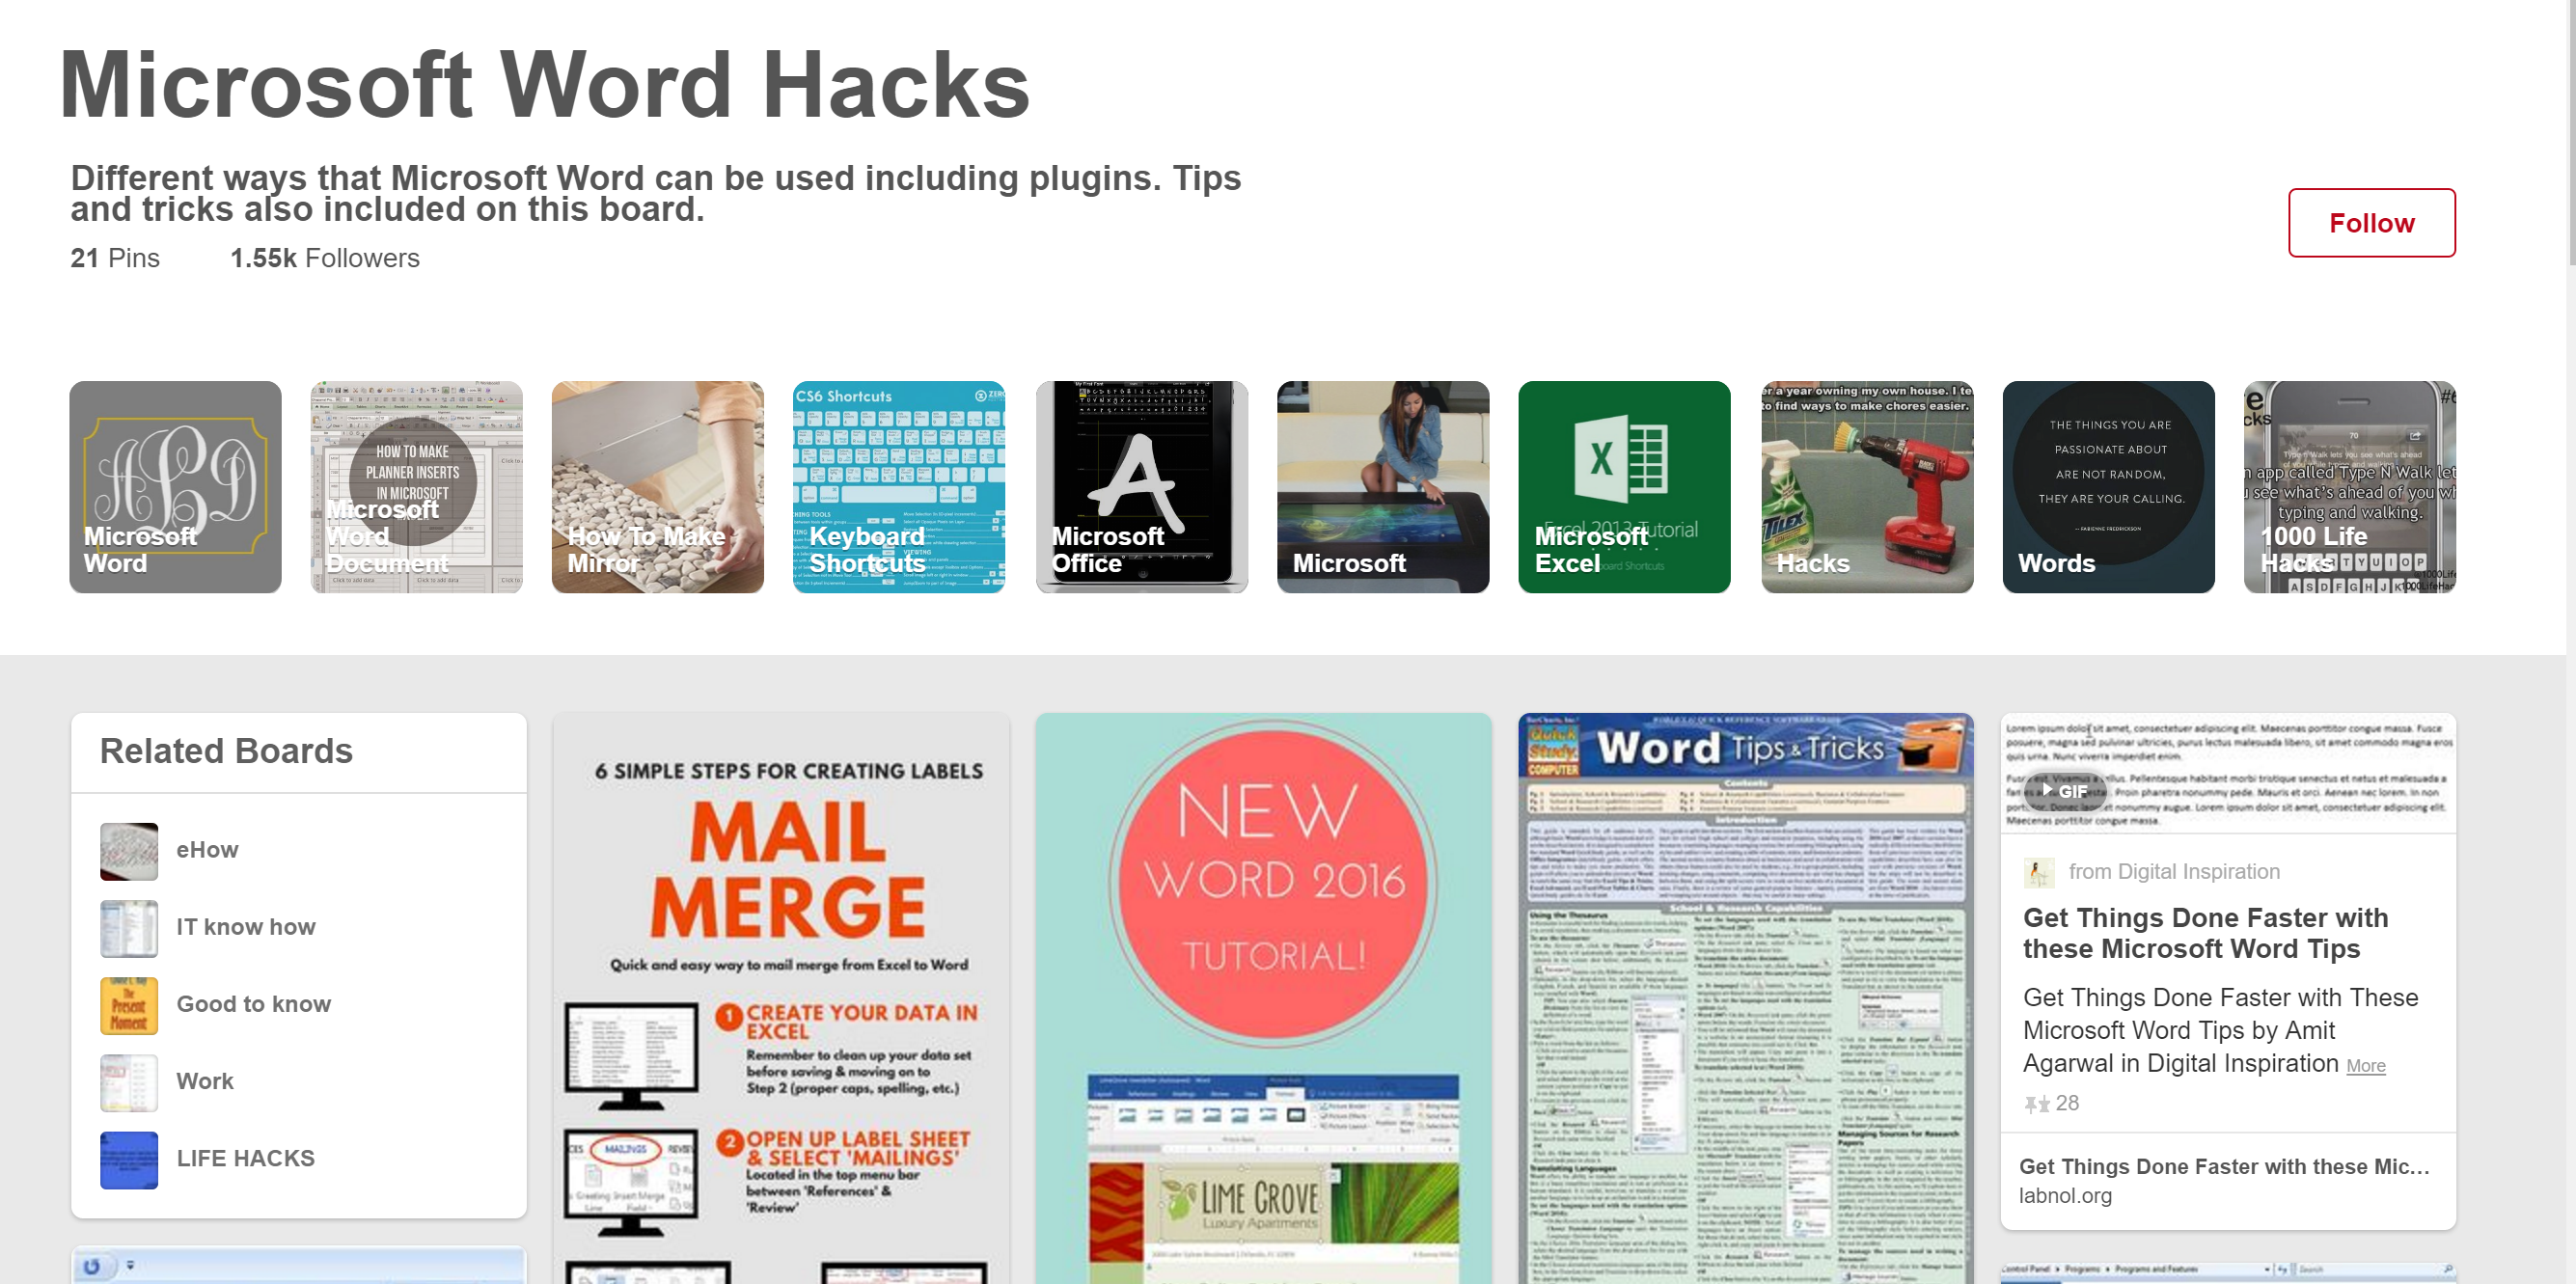 Microsoft Word Hacks on Pinterest